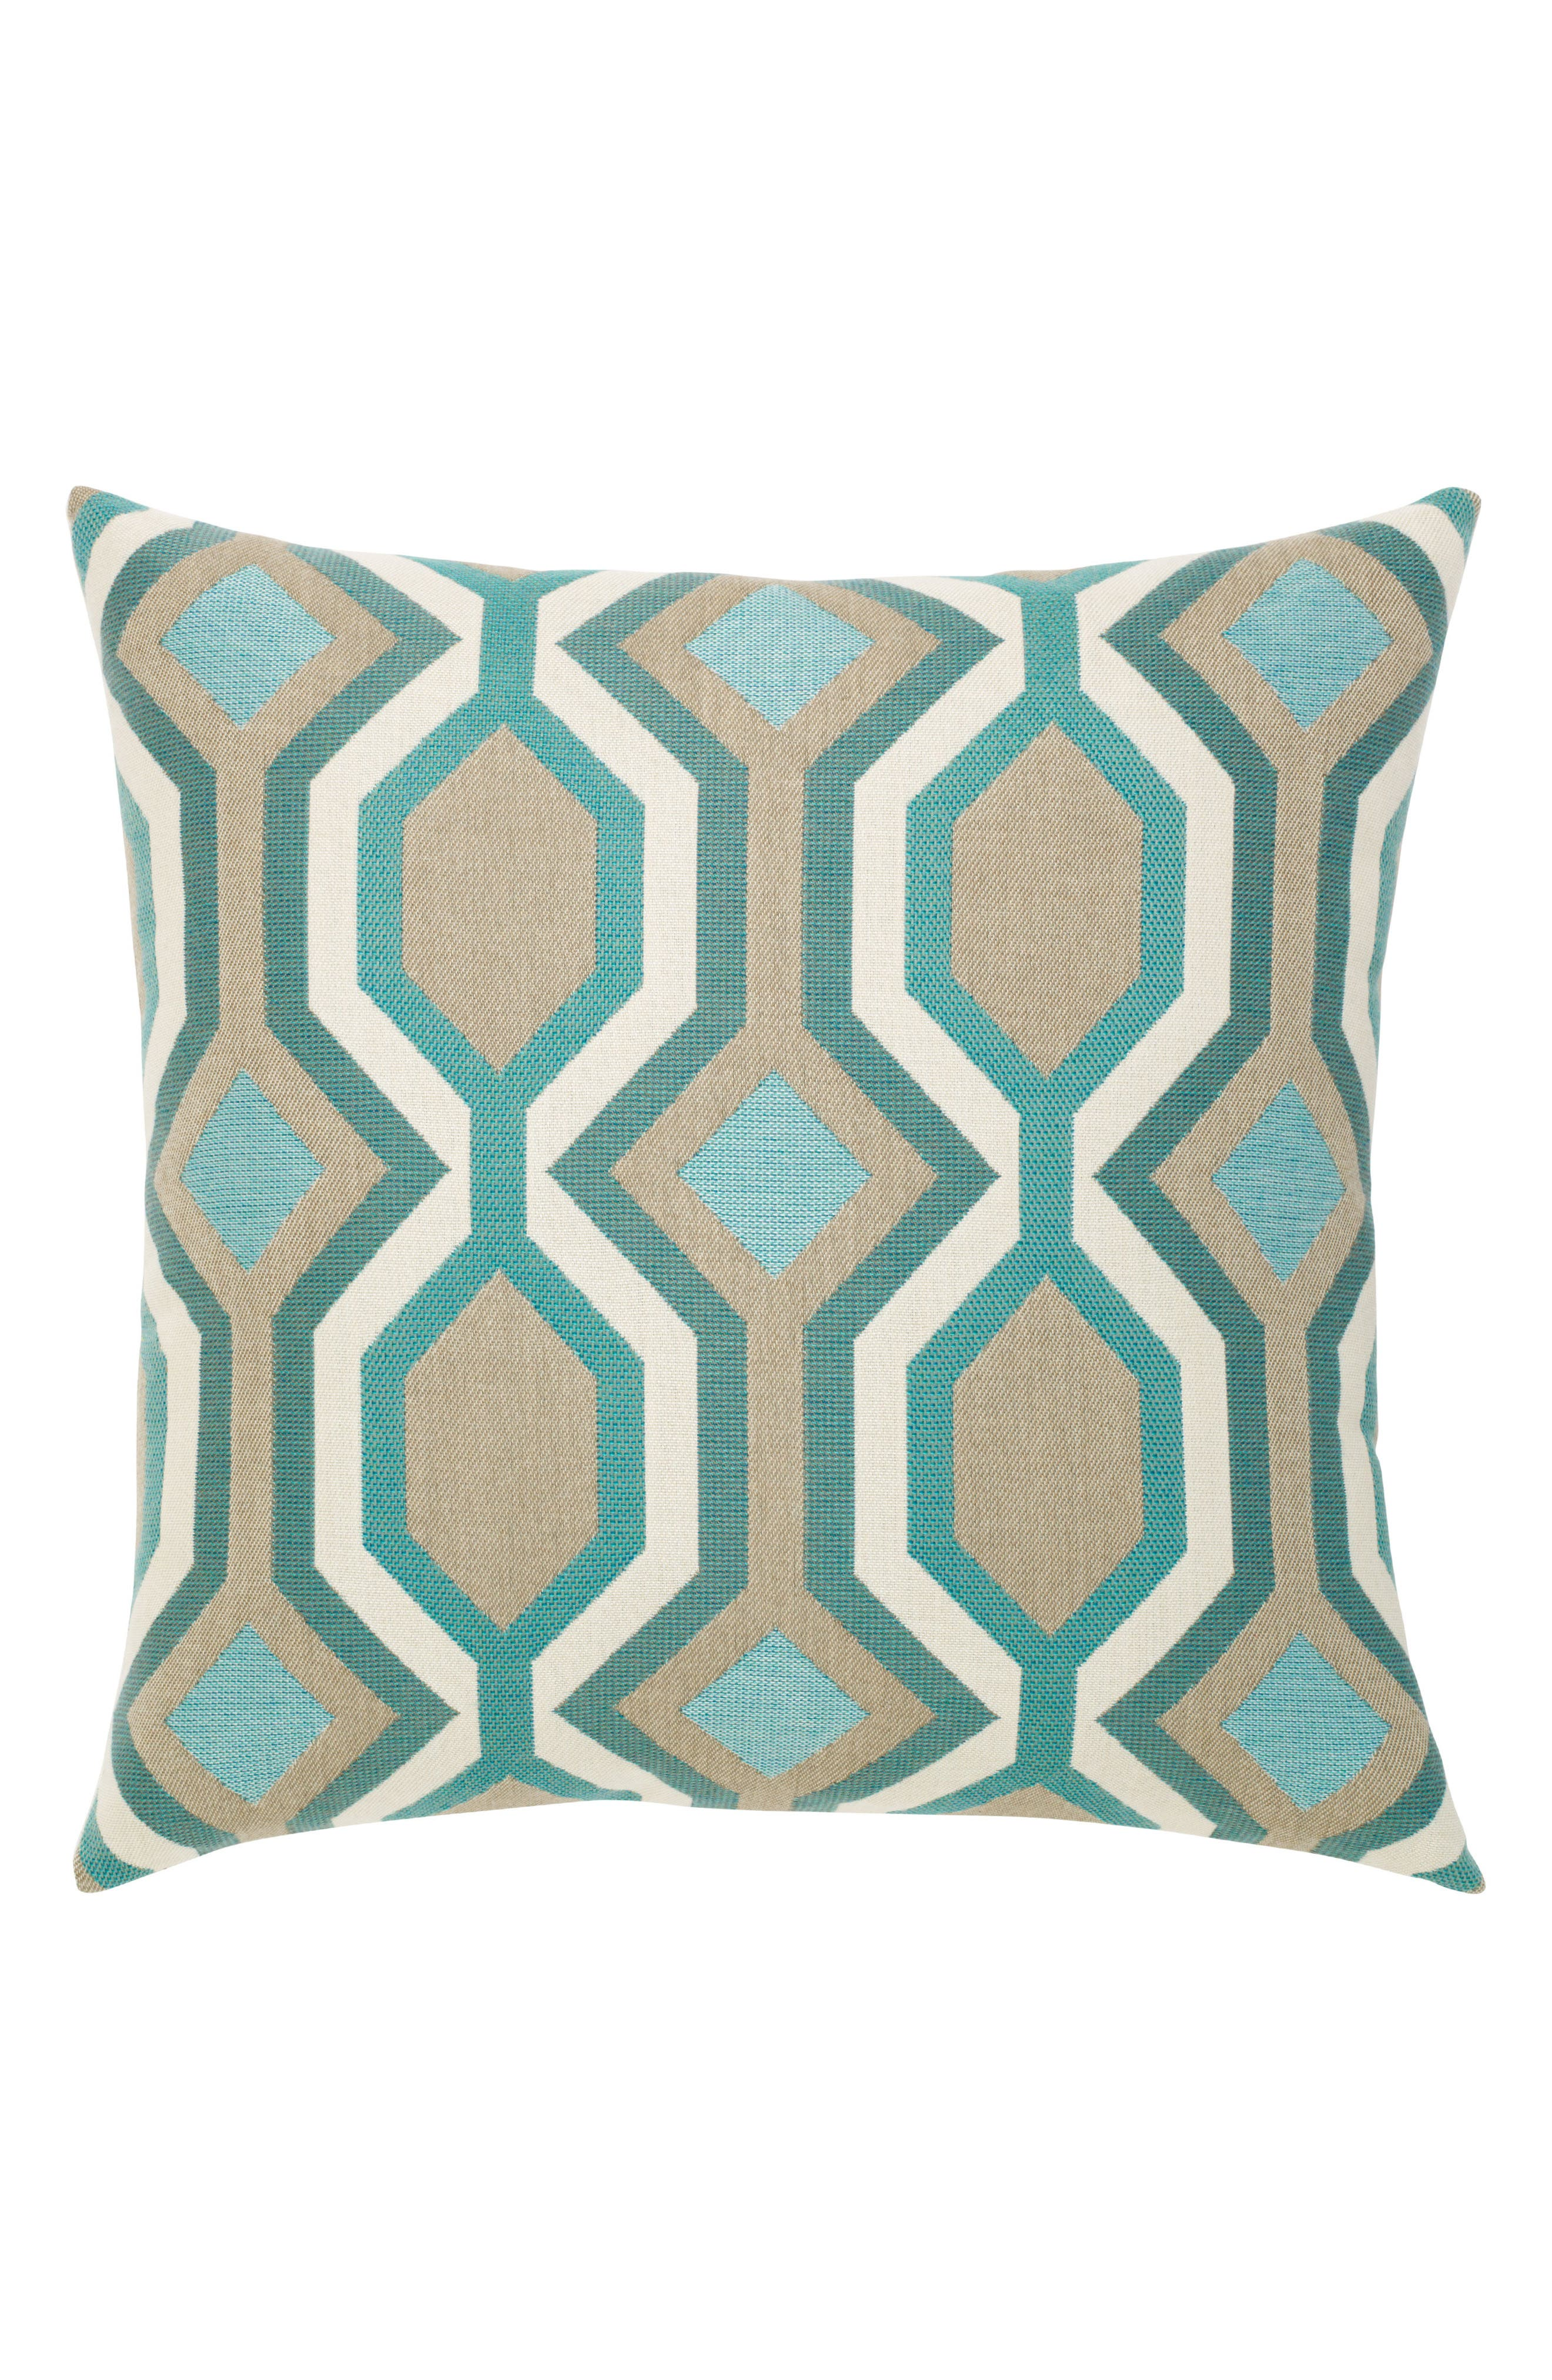 Turquoise Geo Indoor/Outdoor Accent Pillow,                         Main,                         color, Blue/ Brown